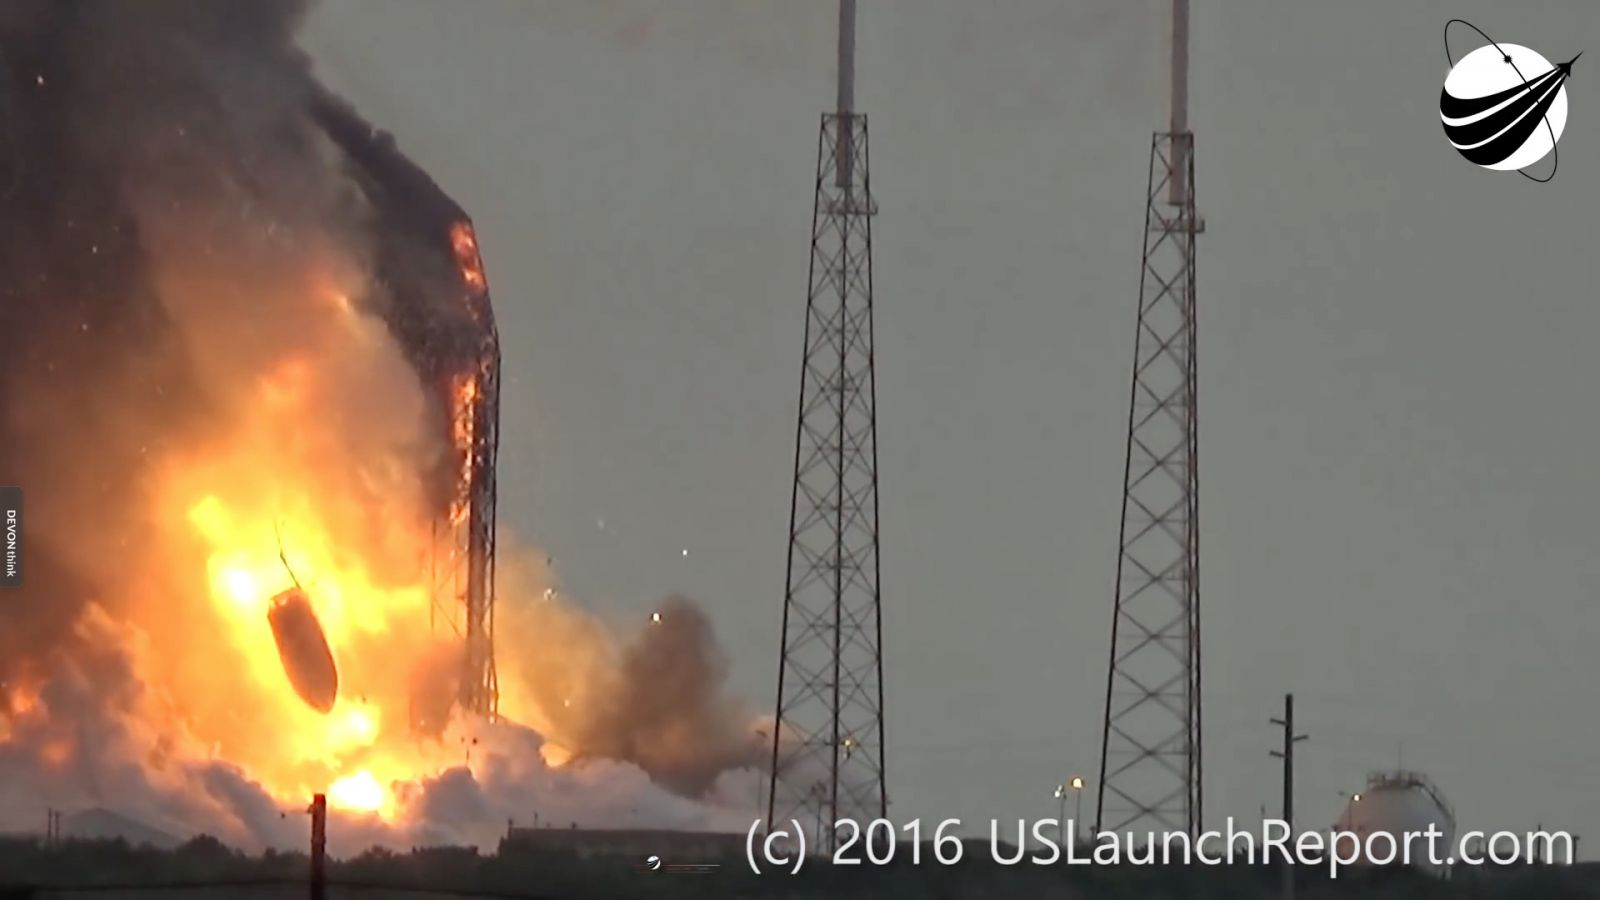 Amos 6 payload fairing falls after SpaceX Falcon 9 explodes image credit Mike Wagner US Launch Report via Space News